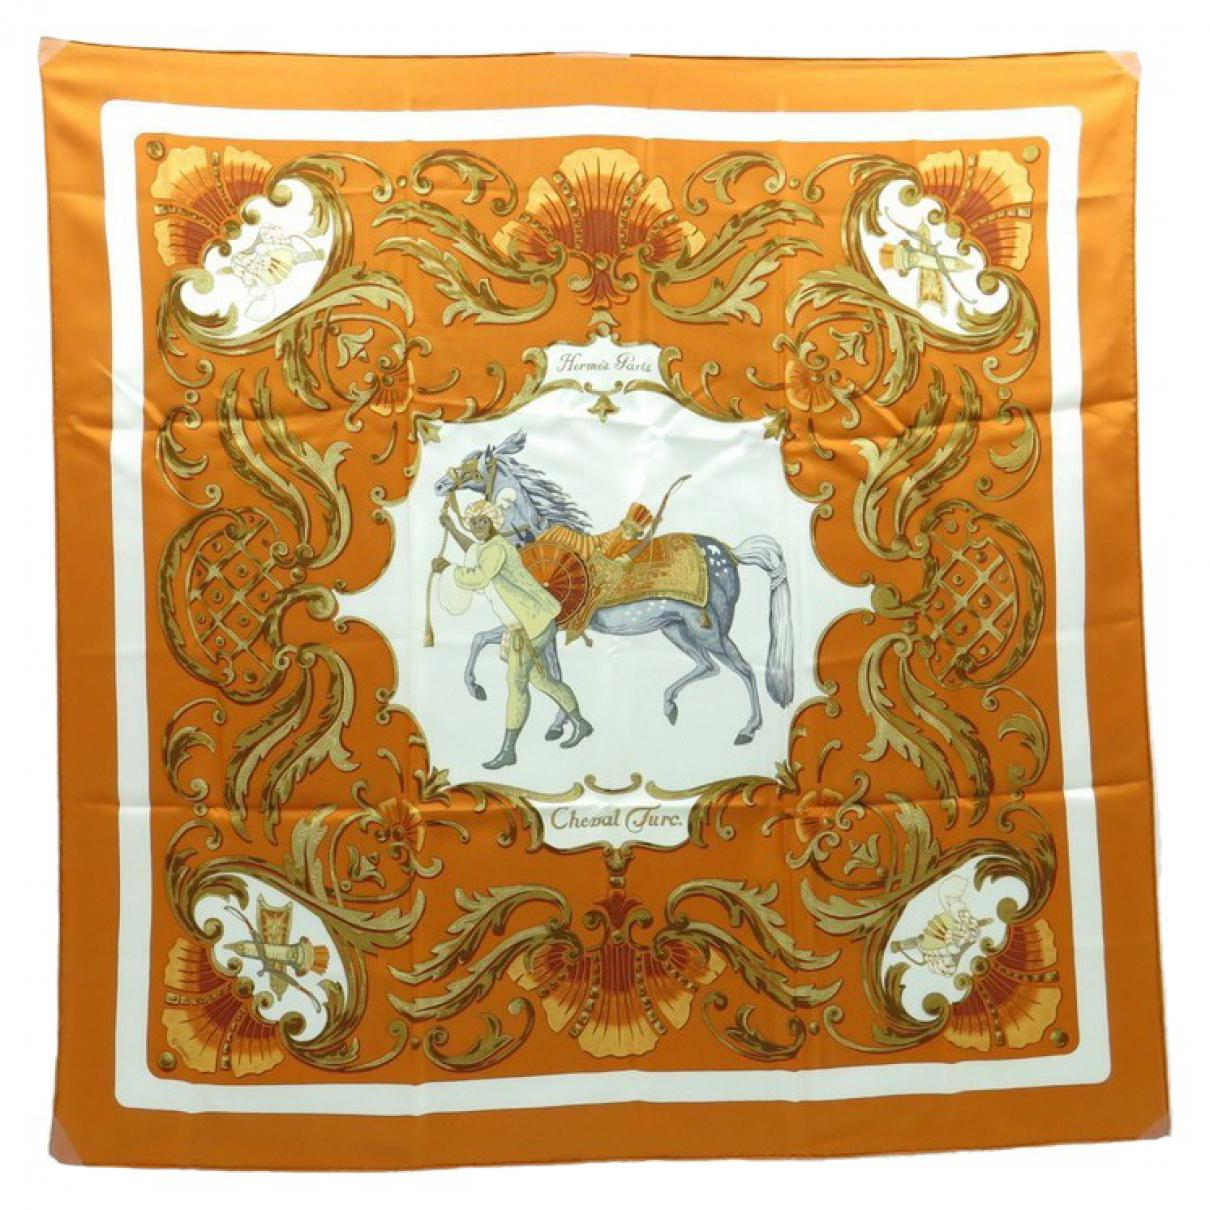 6d04b794499 Hermès. Women s Orange Carré Silk Neckerchief. £224 £166 From Vestiaire  Collective